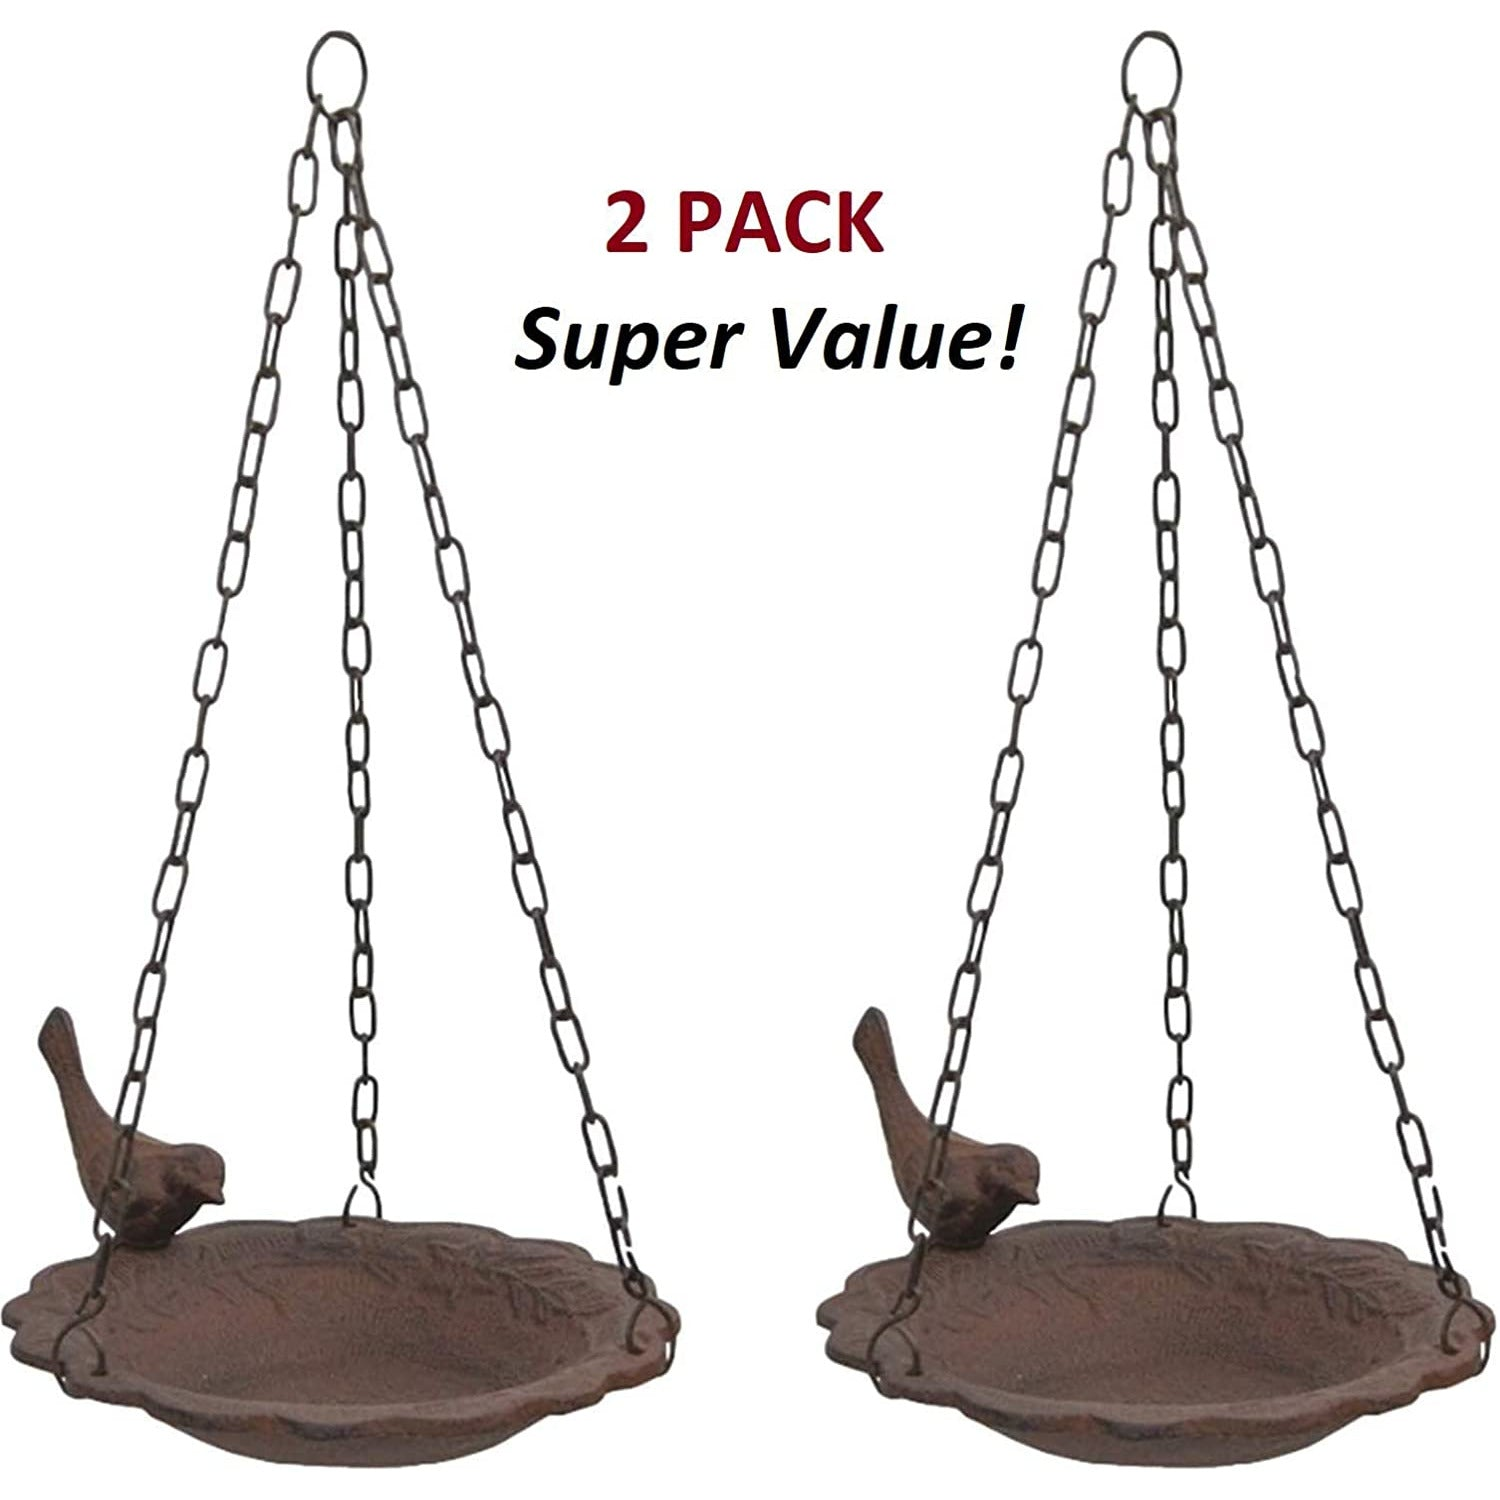 2 Pack - Hanging Cast Iron Birdbath/Feeder